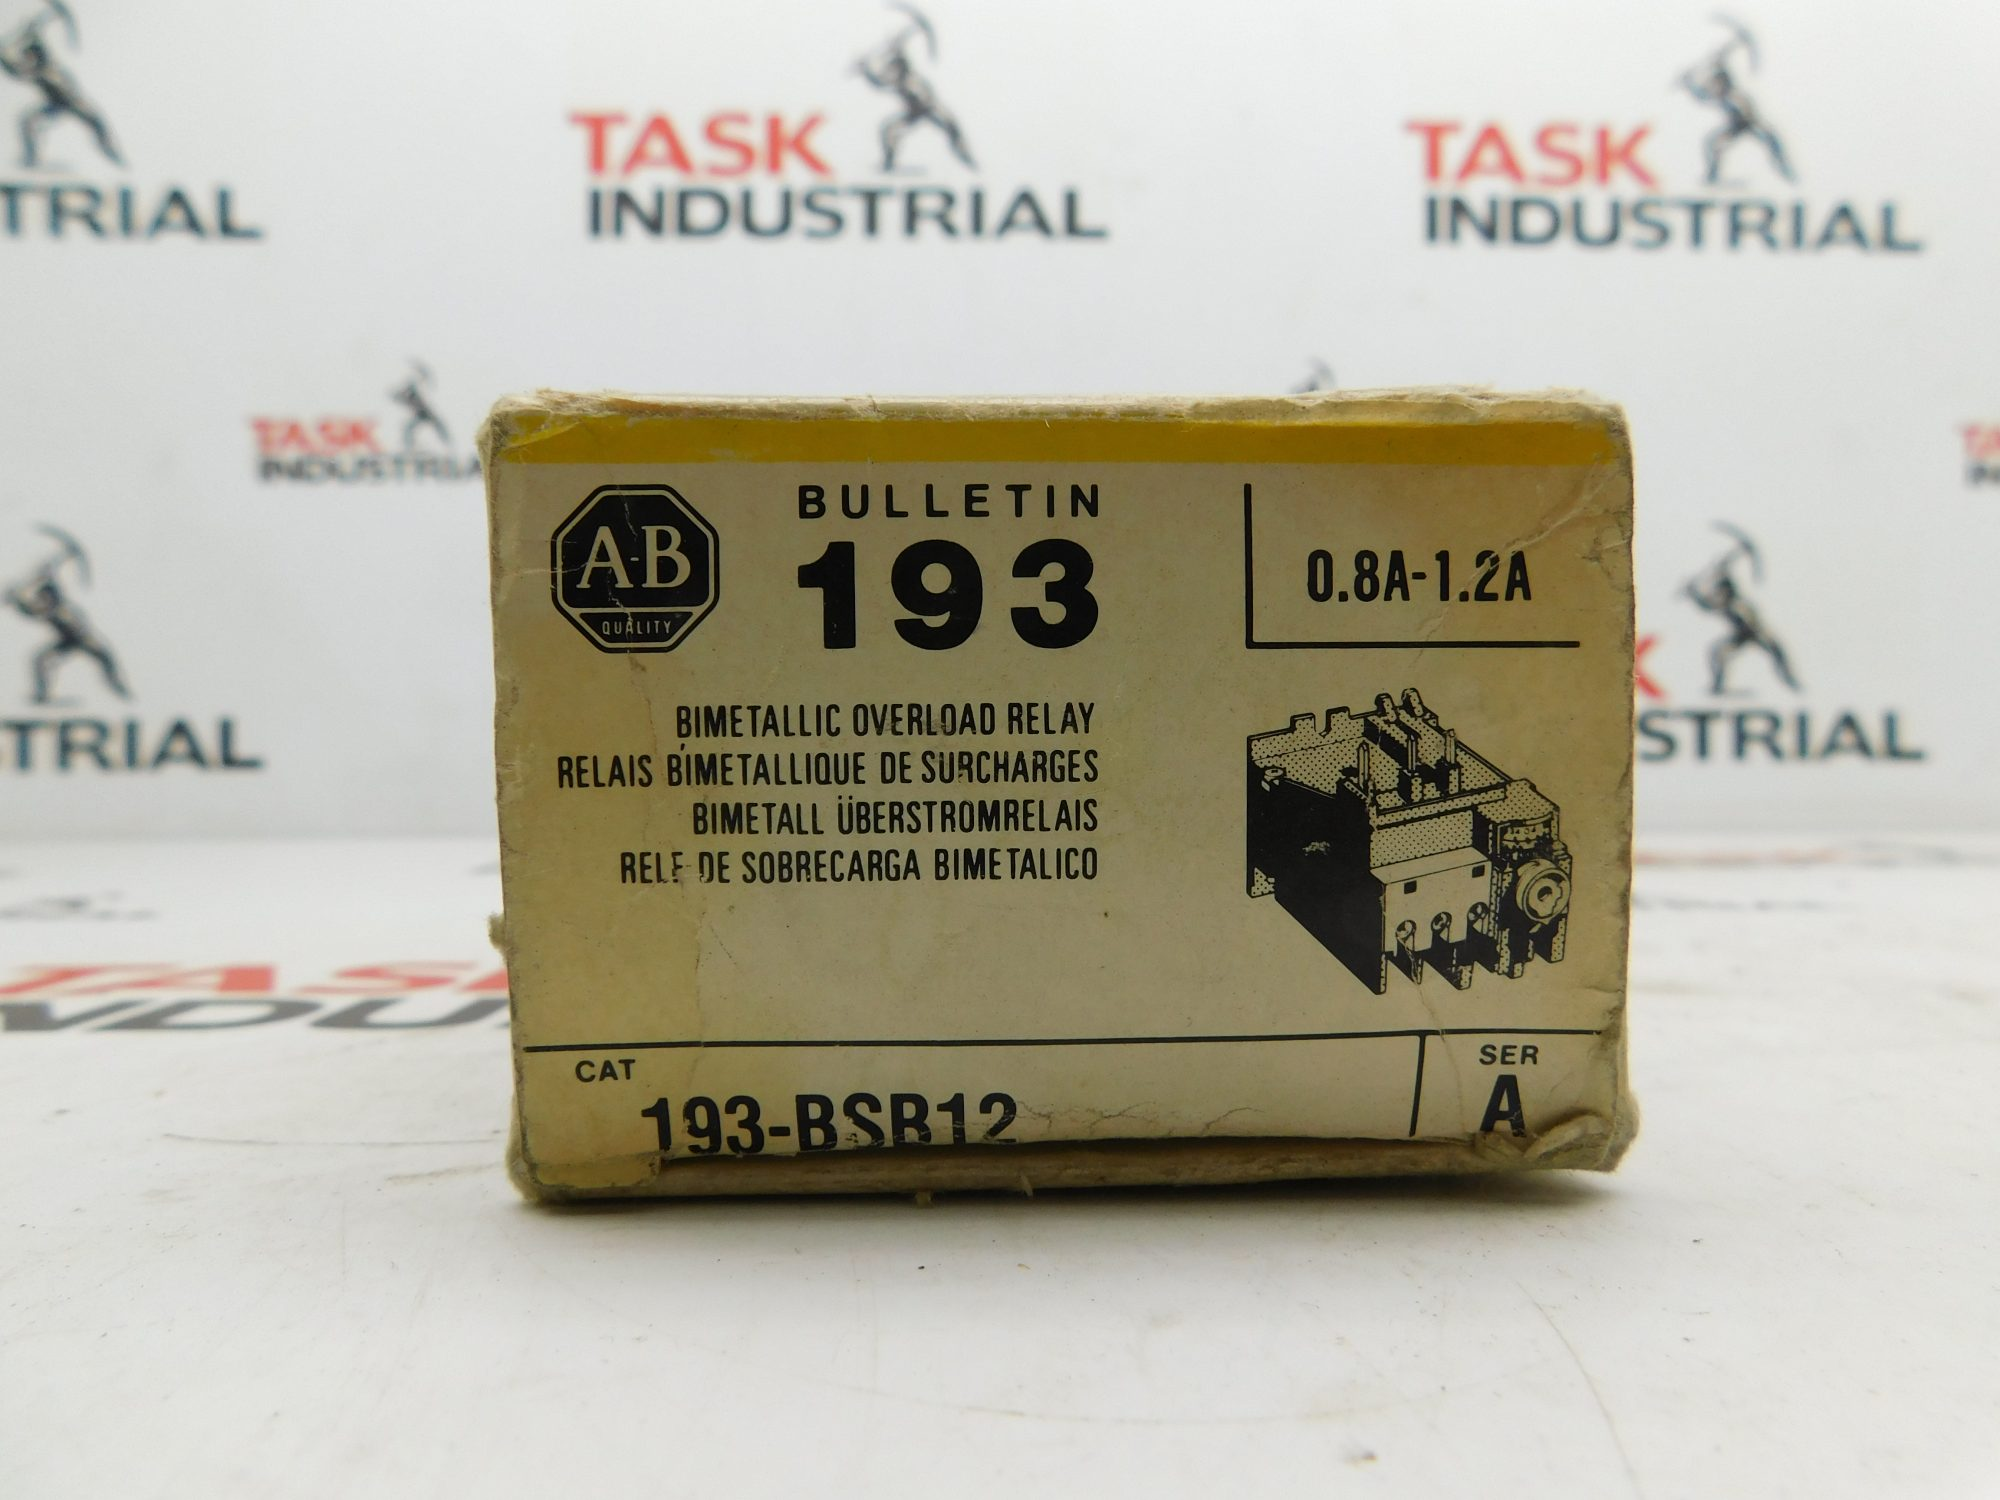 Allen-Bradley CAT No. 193-BSB12 Series A 0.8A-1.2A Overload Relay